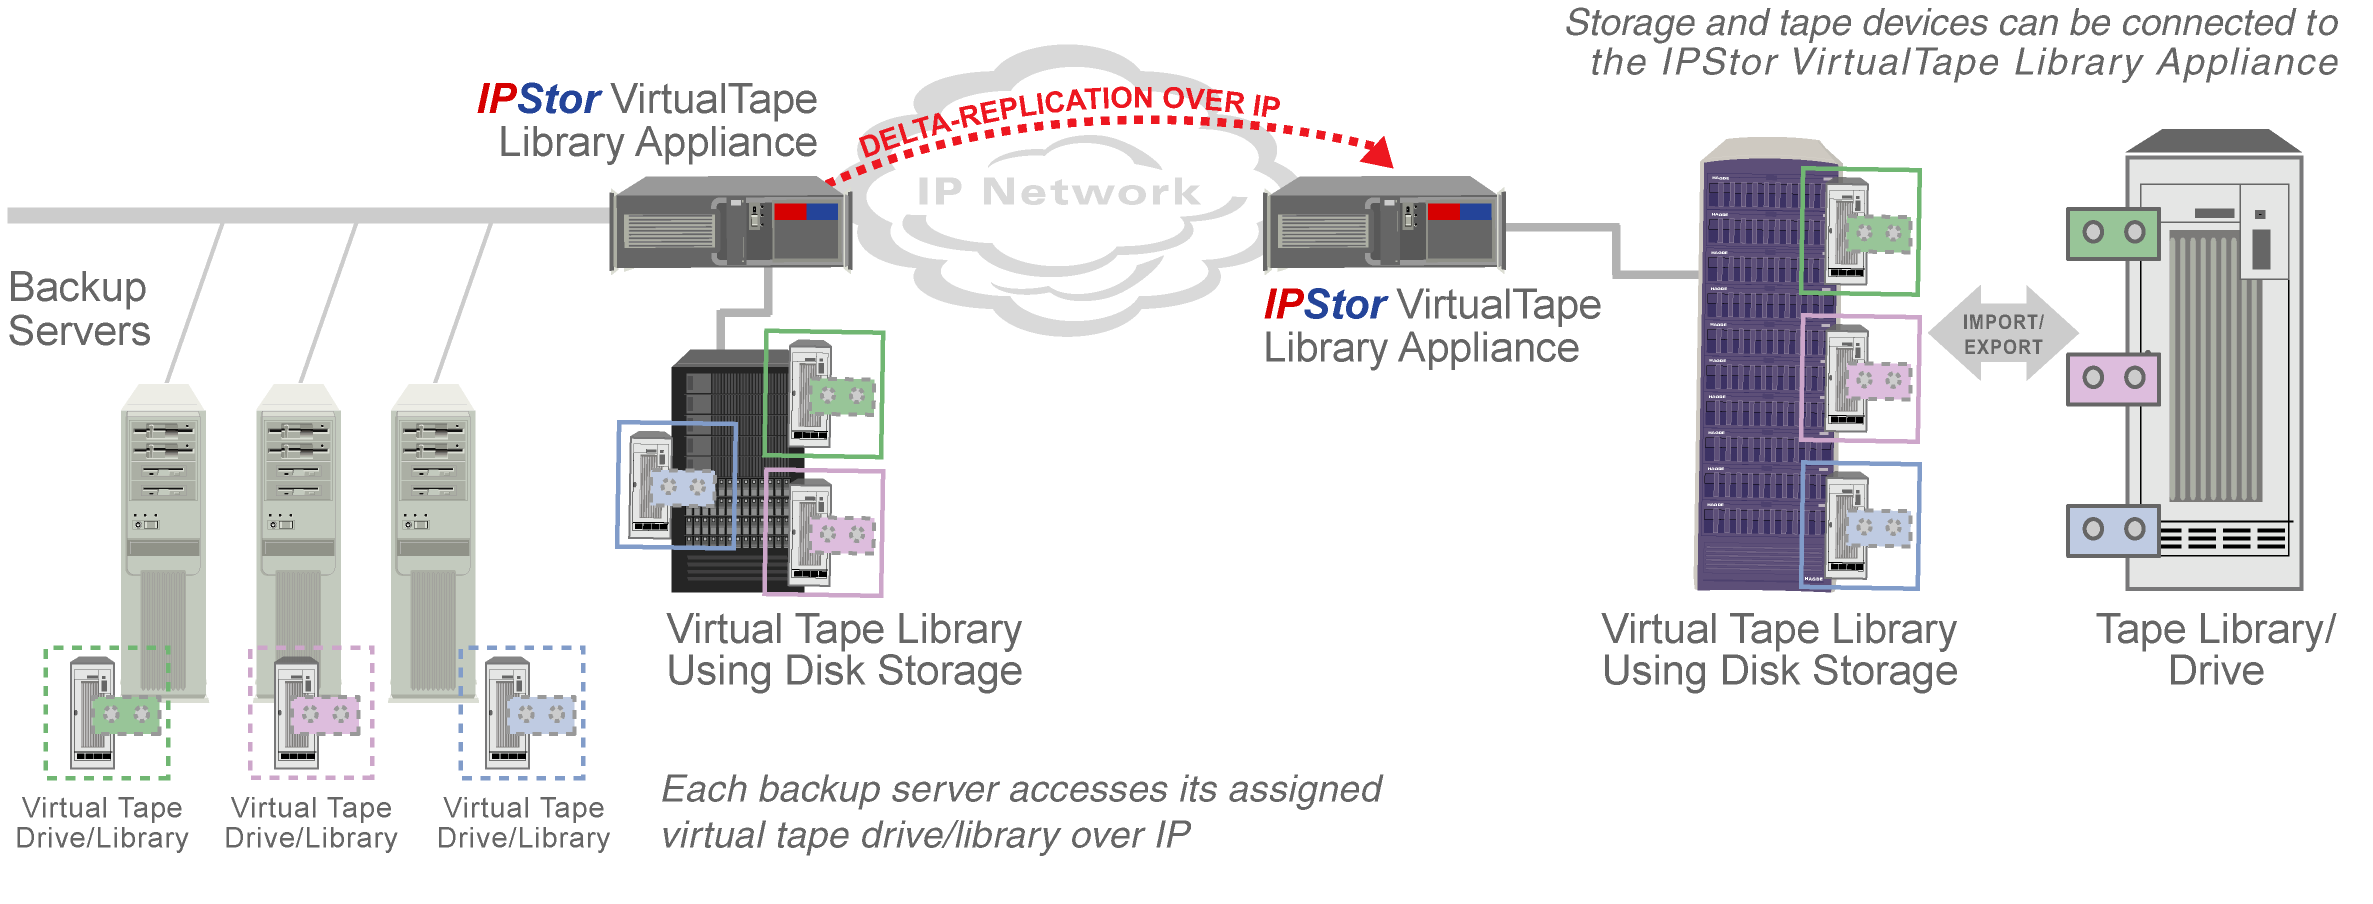 4) The facilitation of tape vaulting by replicating disk-based virtual tape cartridges to the remote